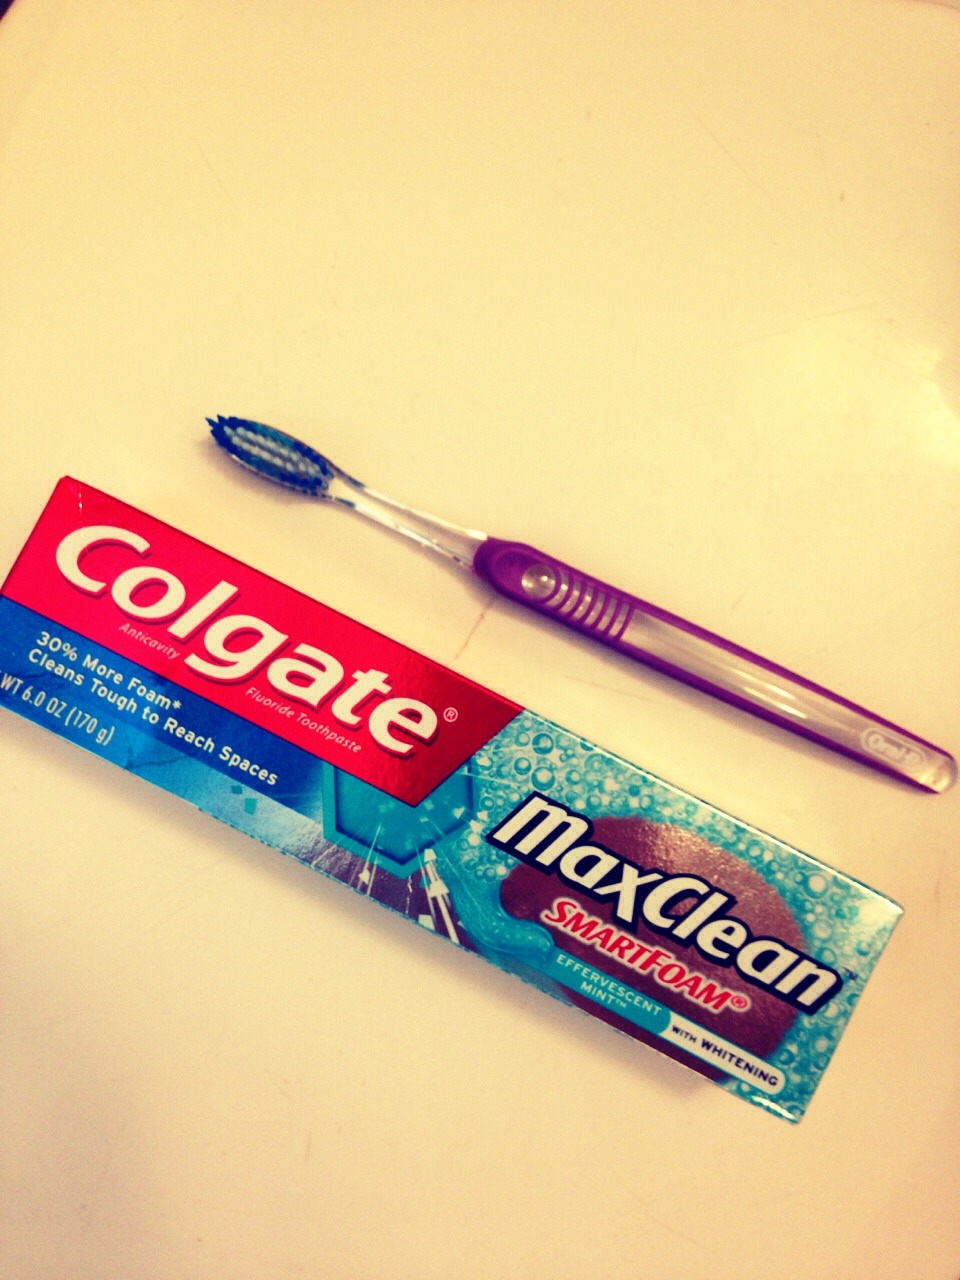 Take an old toothbrush and toothpaste (preferably whitening paste)